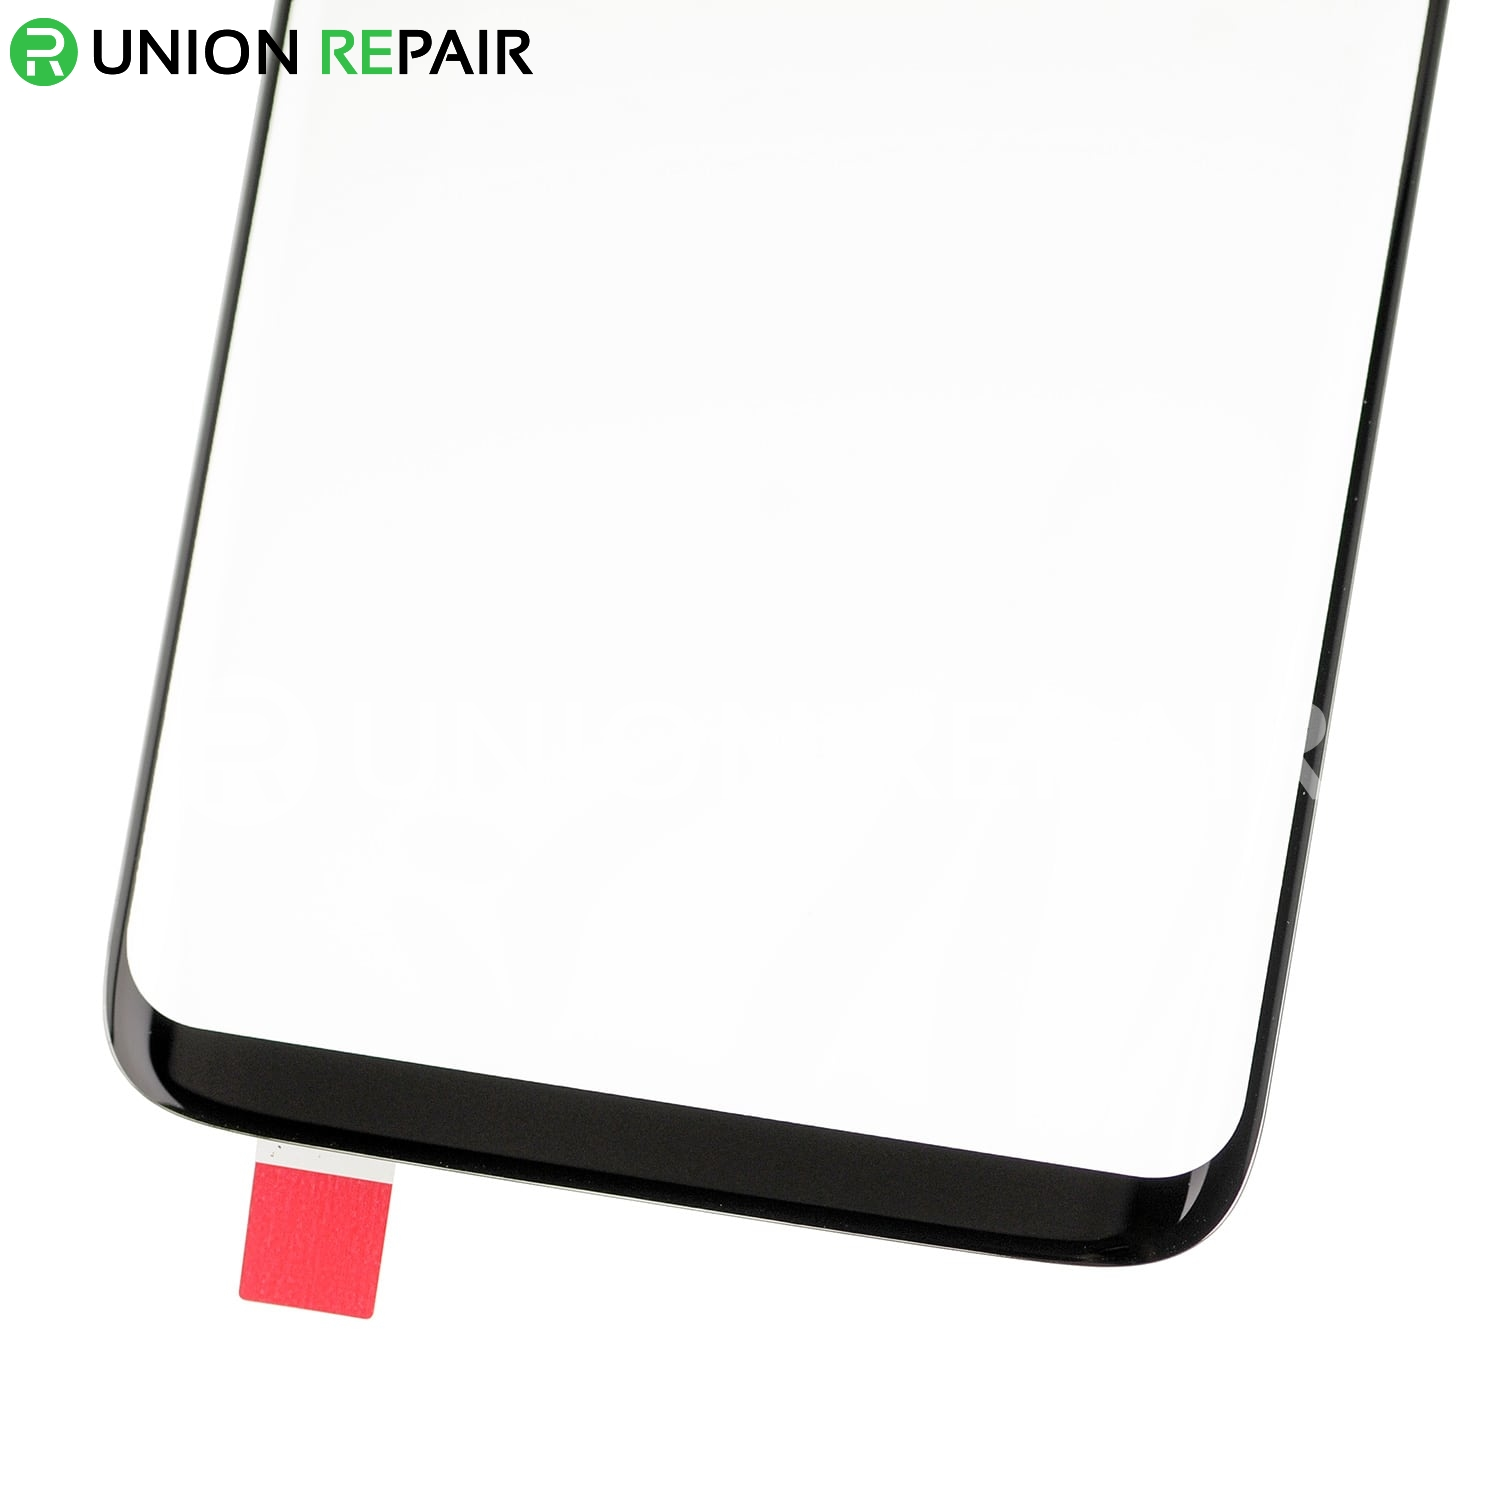 Replacement for Samsung Galaxy S8 Plus SM-G955 Front Glass Lens - Black